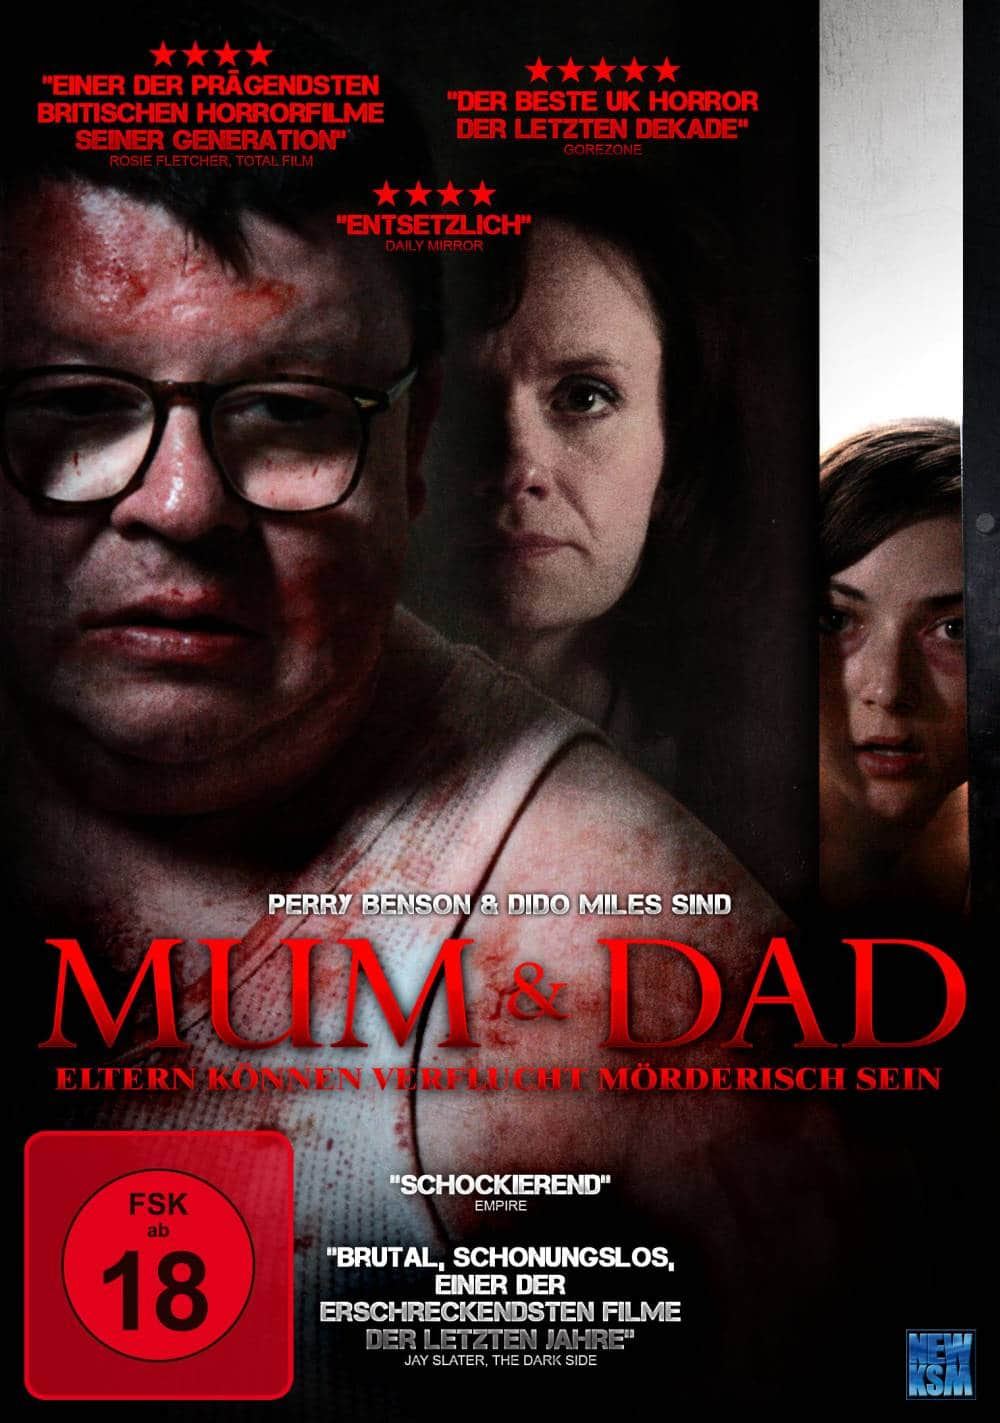 Mum  Dad - Film 2008 - Scary-Moviesde-5641